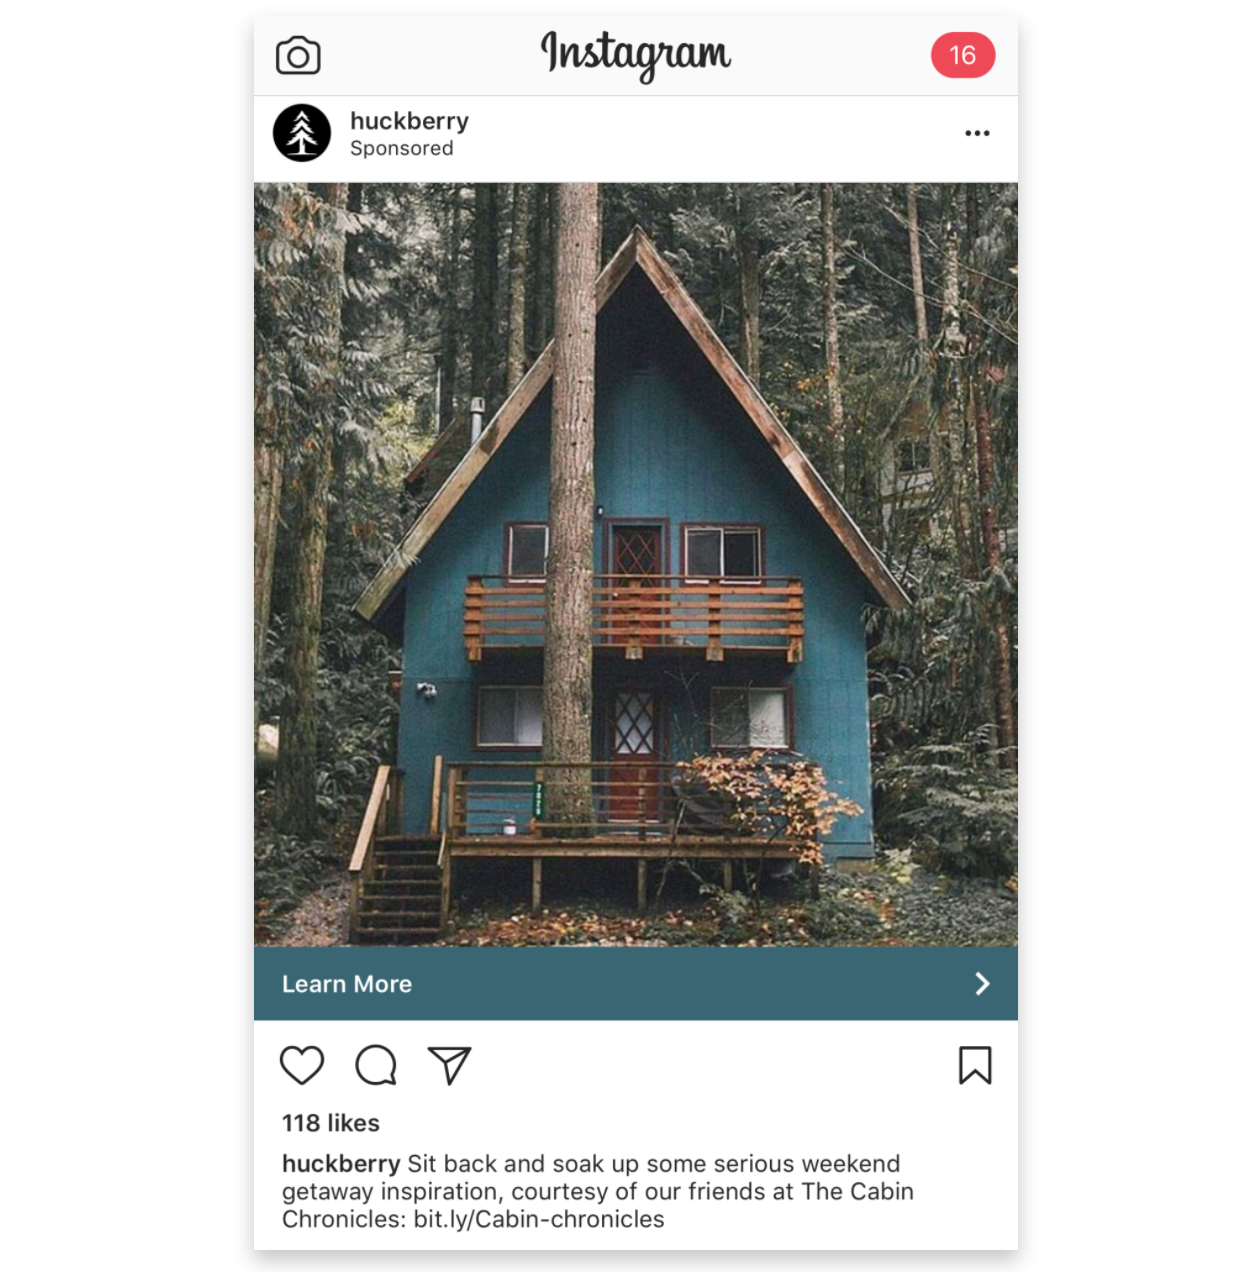 Screenshot showing an Instagram post by Huckberry